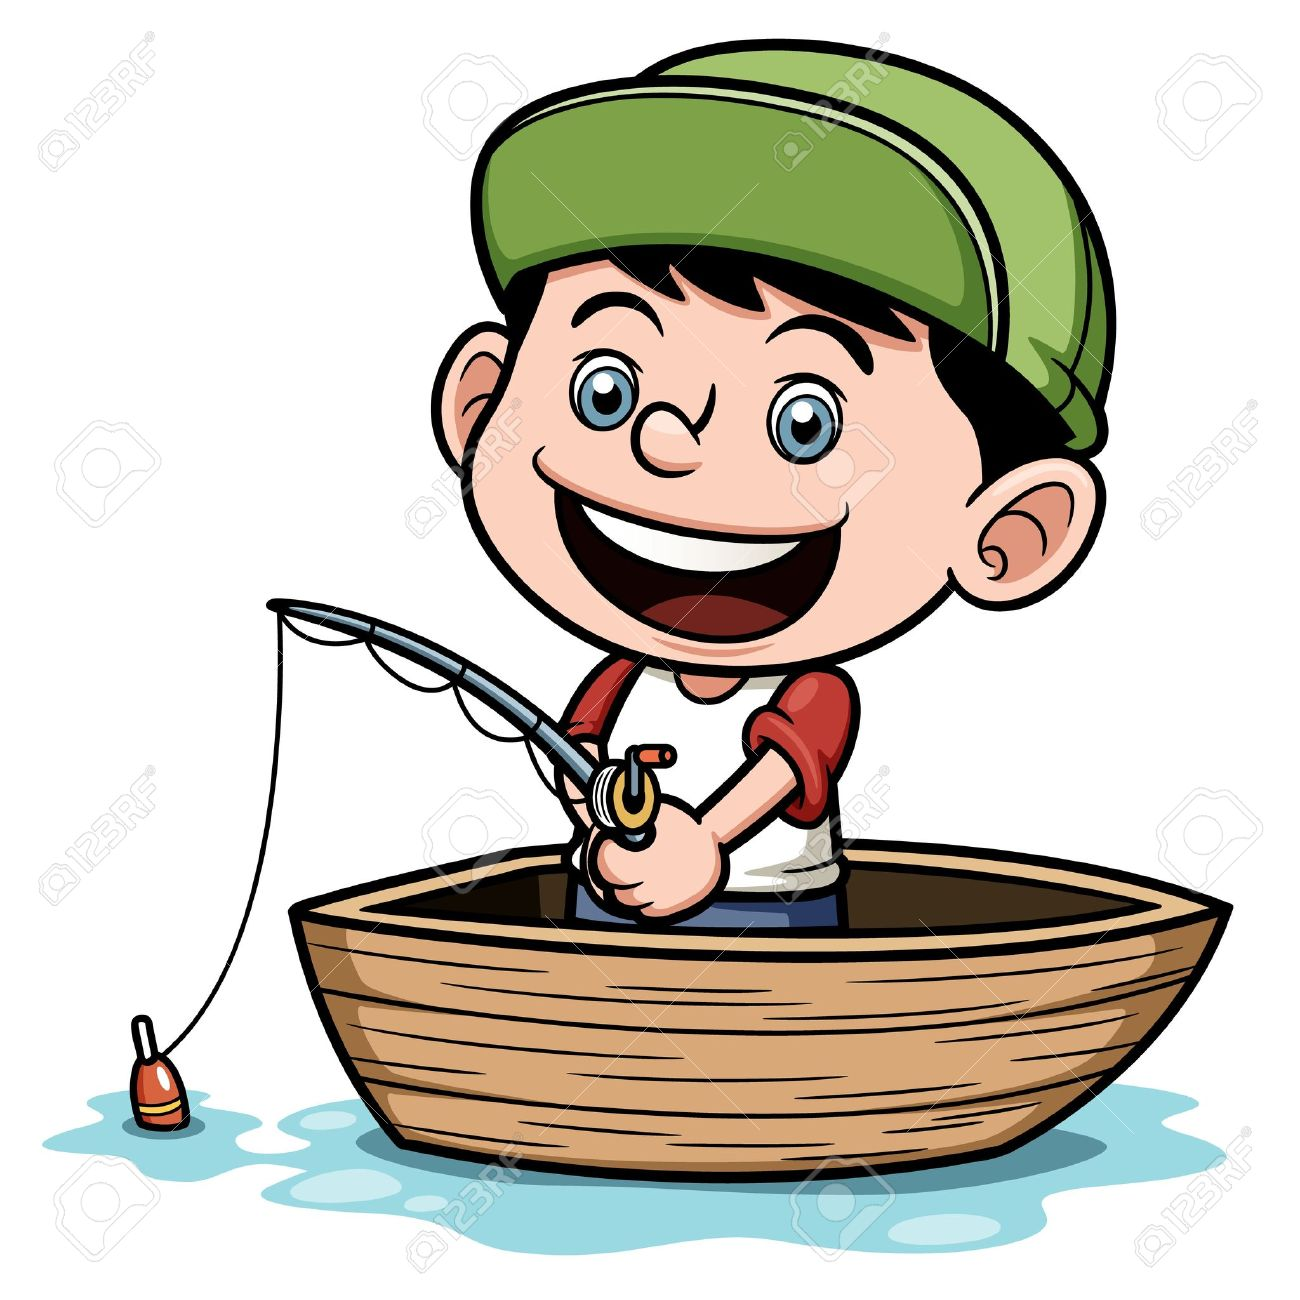 illustration of boy fishing in a boat royalty free cliparts vectors rh 123rf com boy fishing clipart free little boy fishing clipart